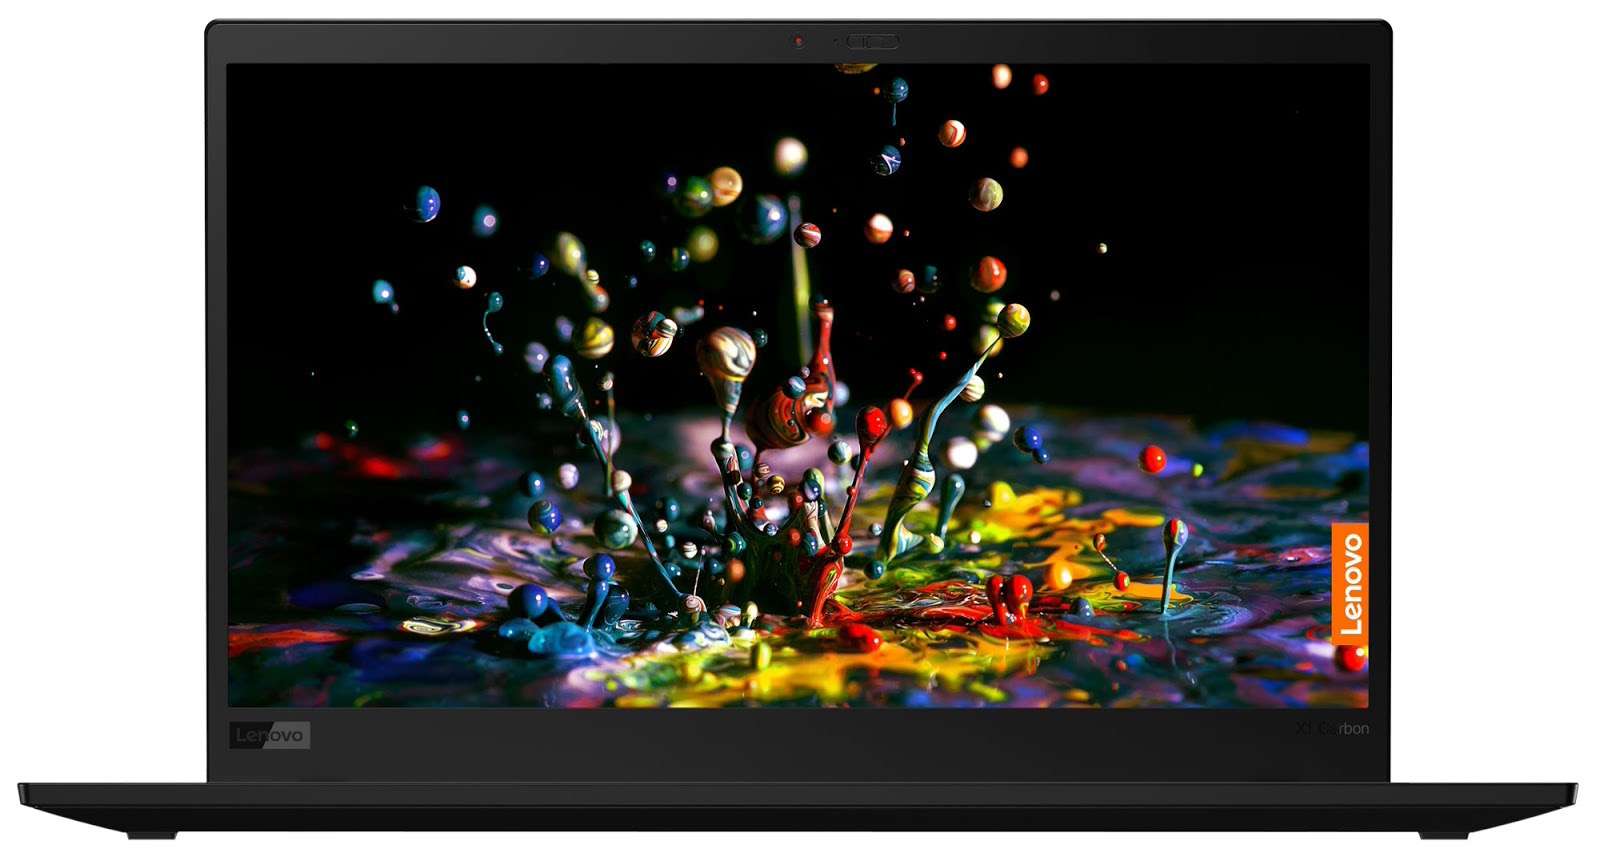 Фото 4. Ноутбук Lenovo ThinkPad X1 Carbon Gen 7 Black (20QD003CRT)